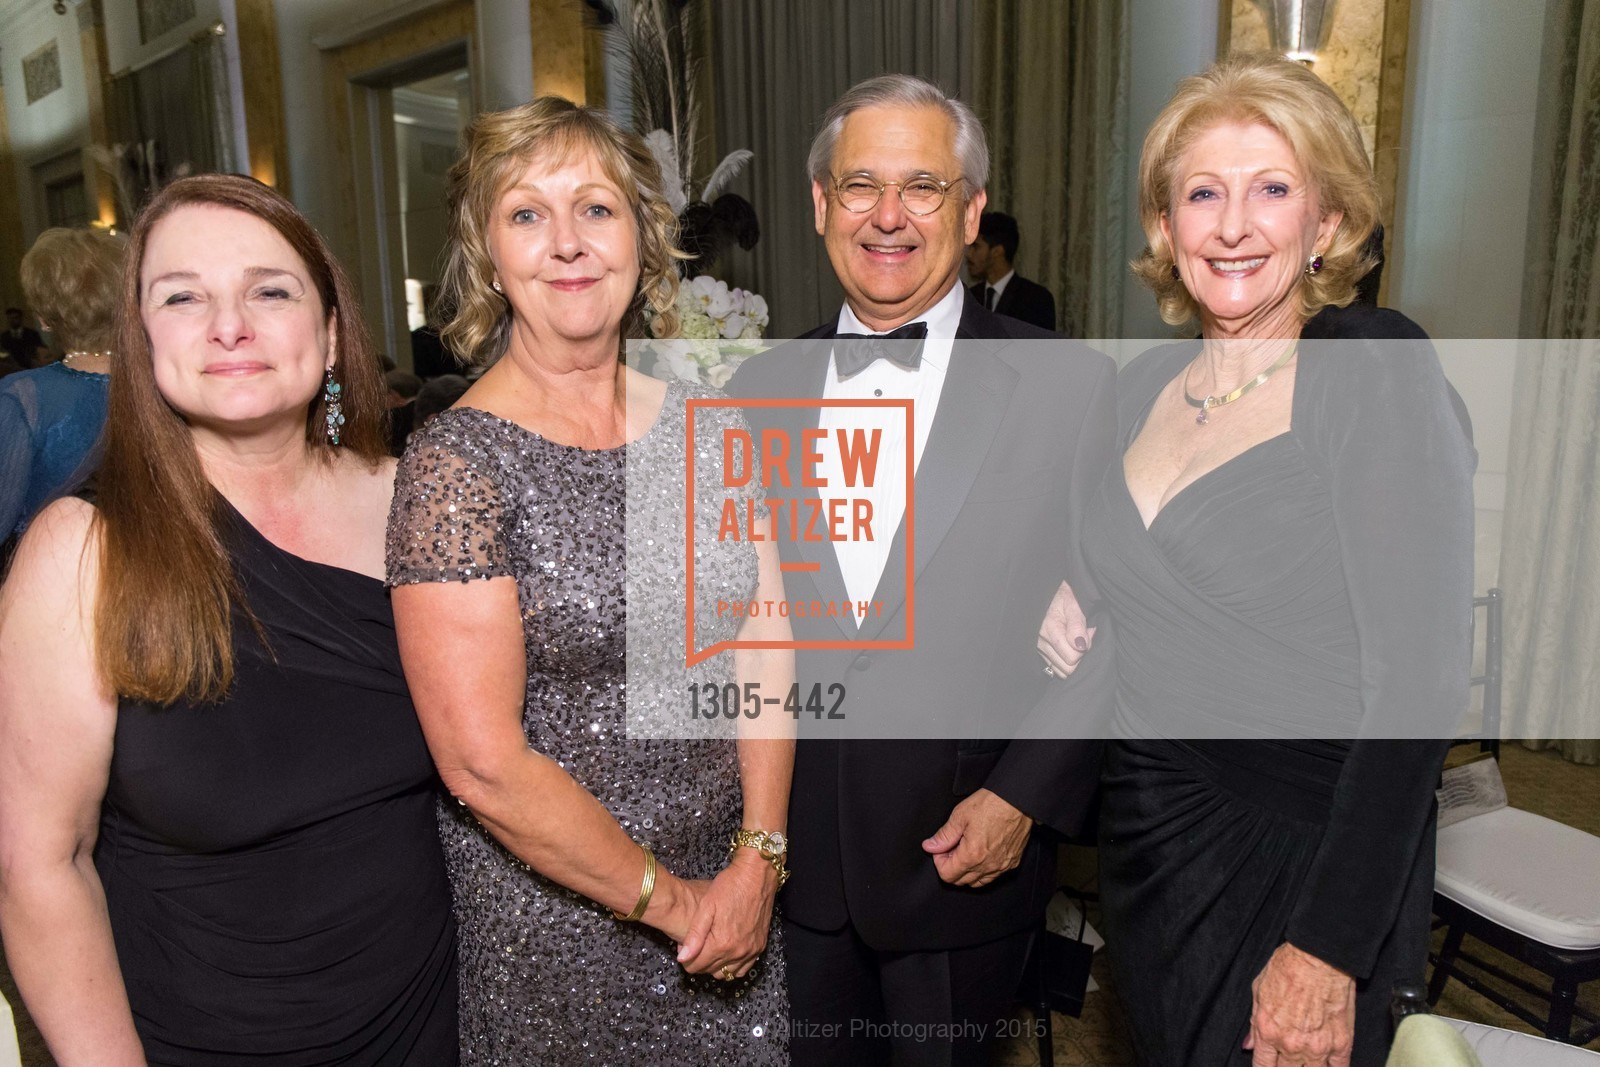 Michelle Jackson, Jillian Wood, Conner Duffey, Dee Eva, Metropolitan Club Presents THE CENTENNIAL GALA, Metropolitan Club. 640 Sutter Street, November 5th, 2015,Drew Altizer, Drew Altizer Photography, full-service agency, private events, San Francisco photographer, photographer california